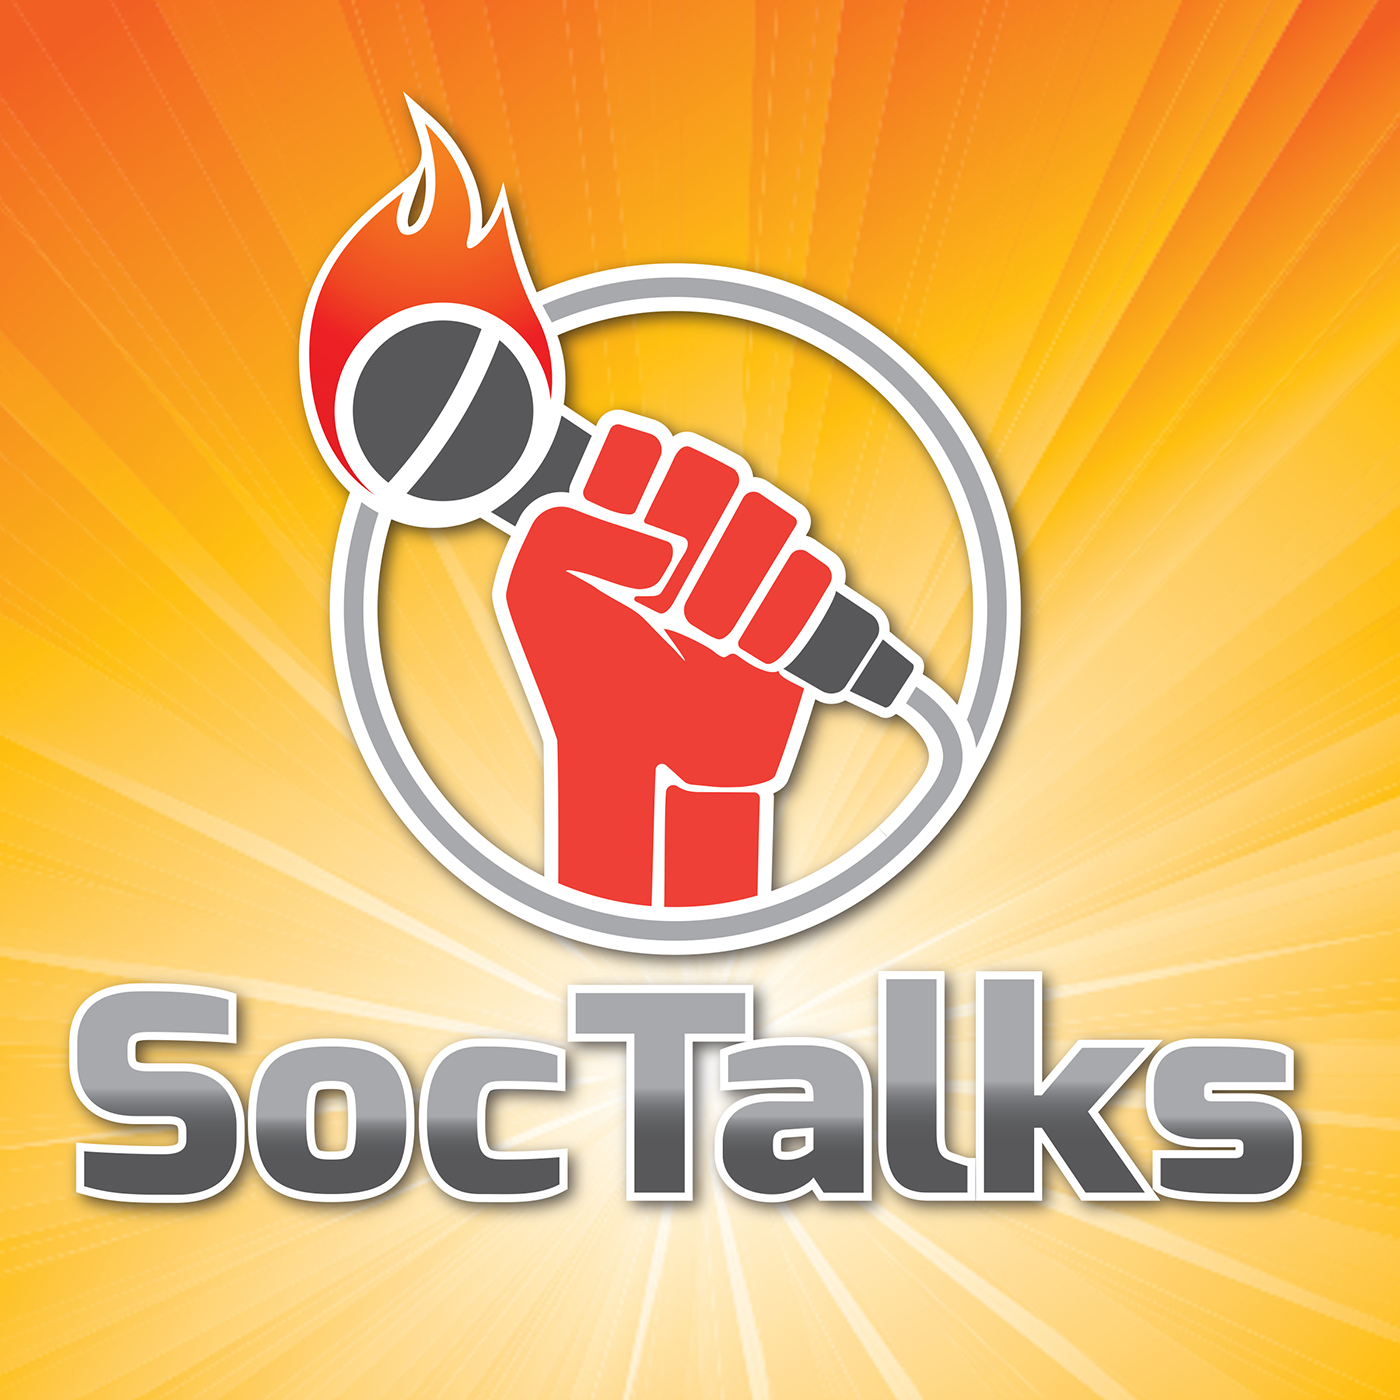 SocTalks Episode 020 Season 2 show art